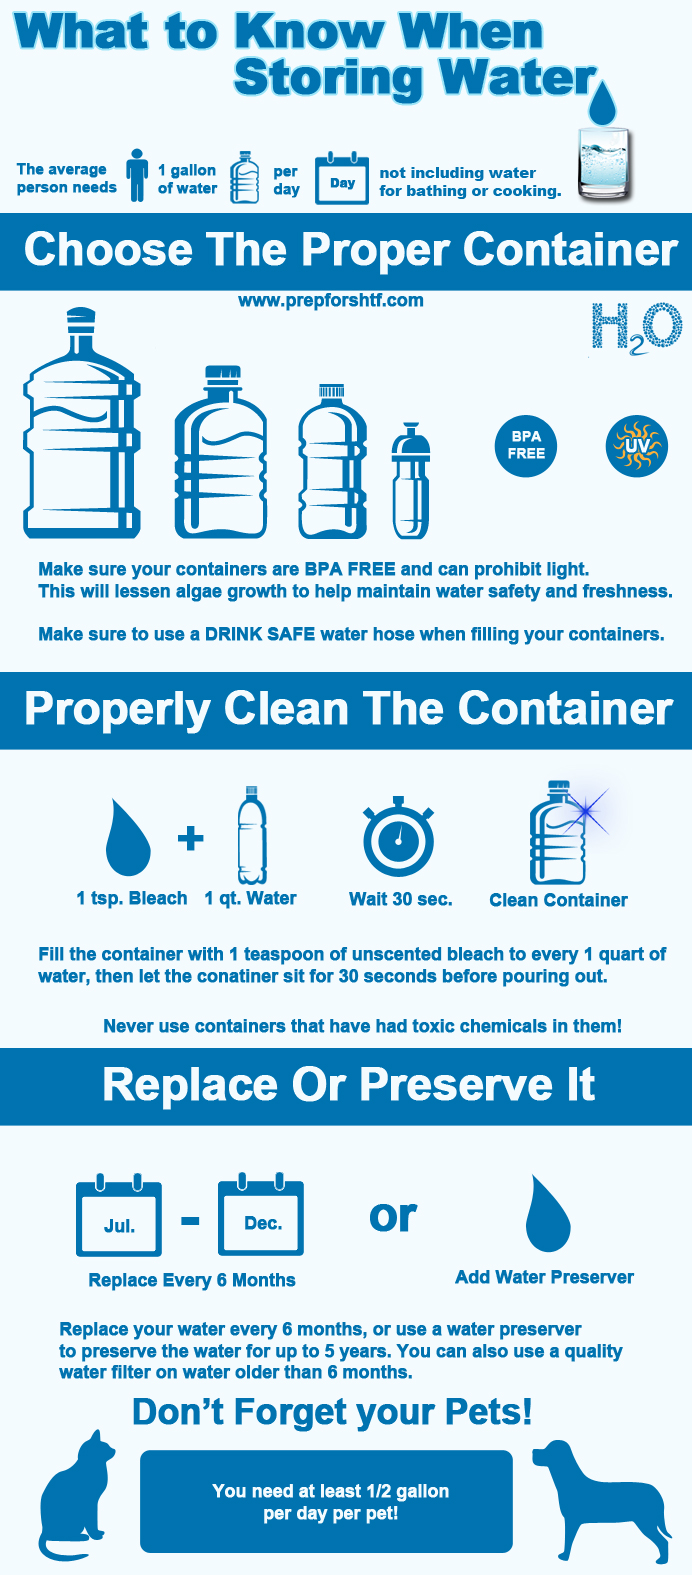 What to Know When Storing Water